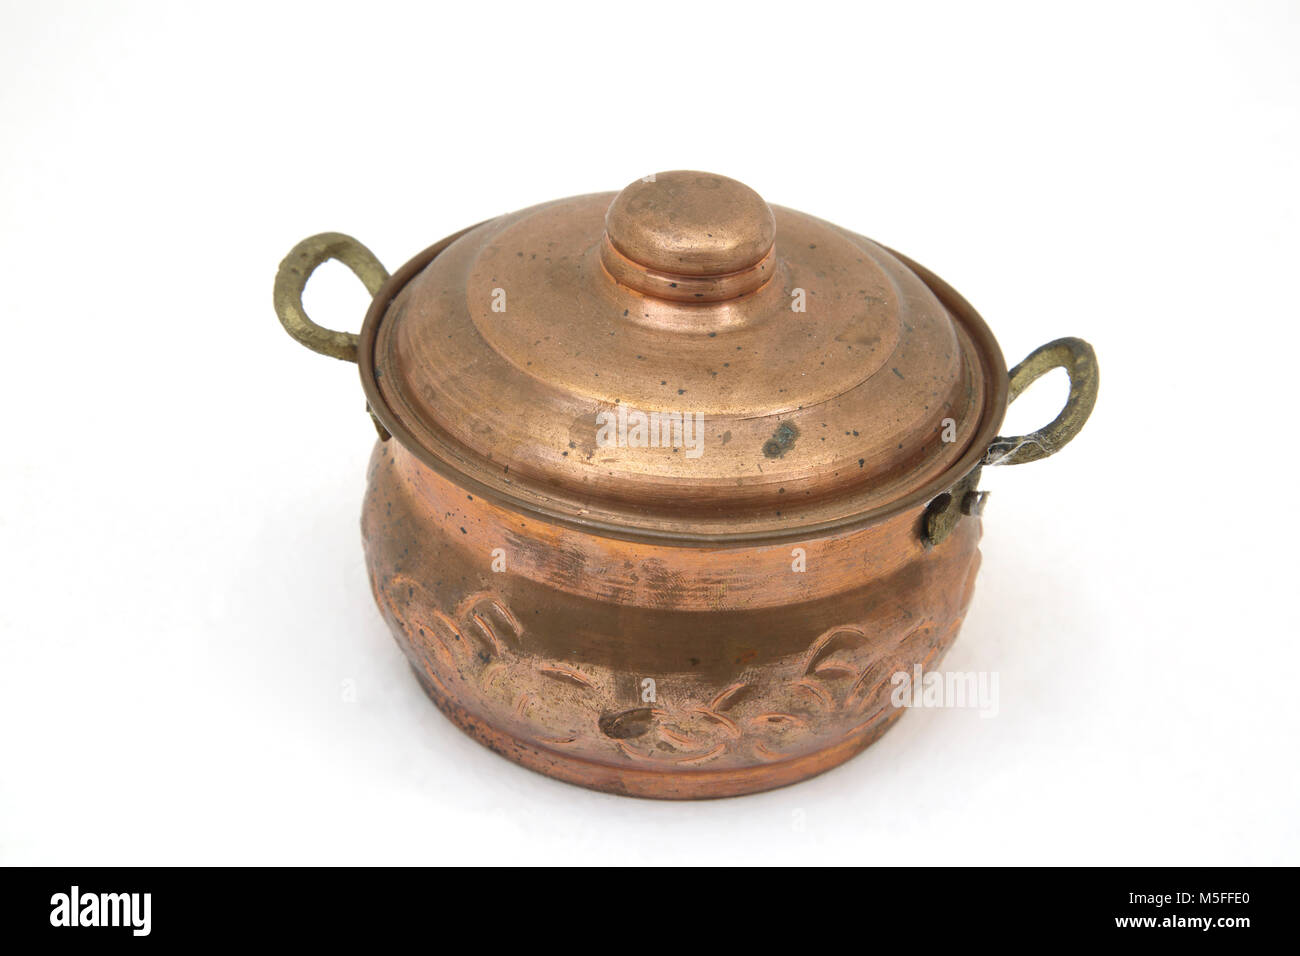 Copper Cooking Pot With Handles - Stock Image